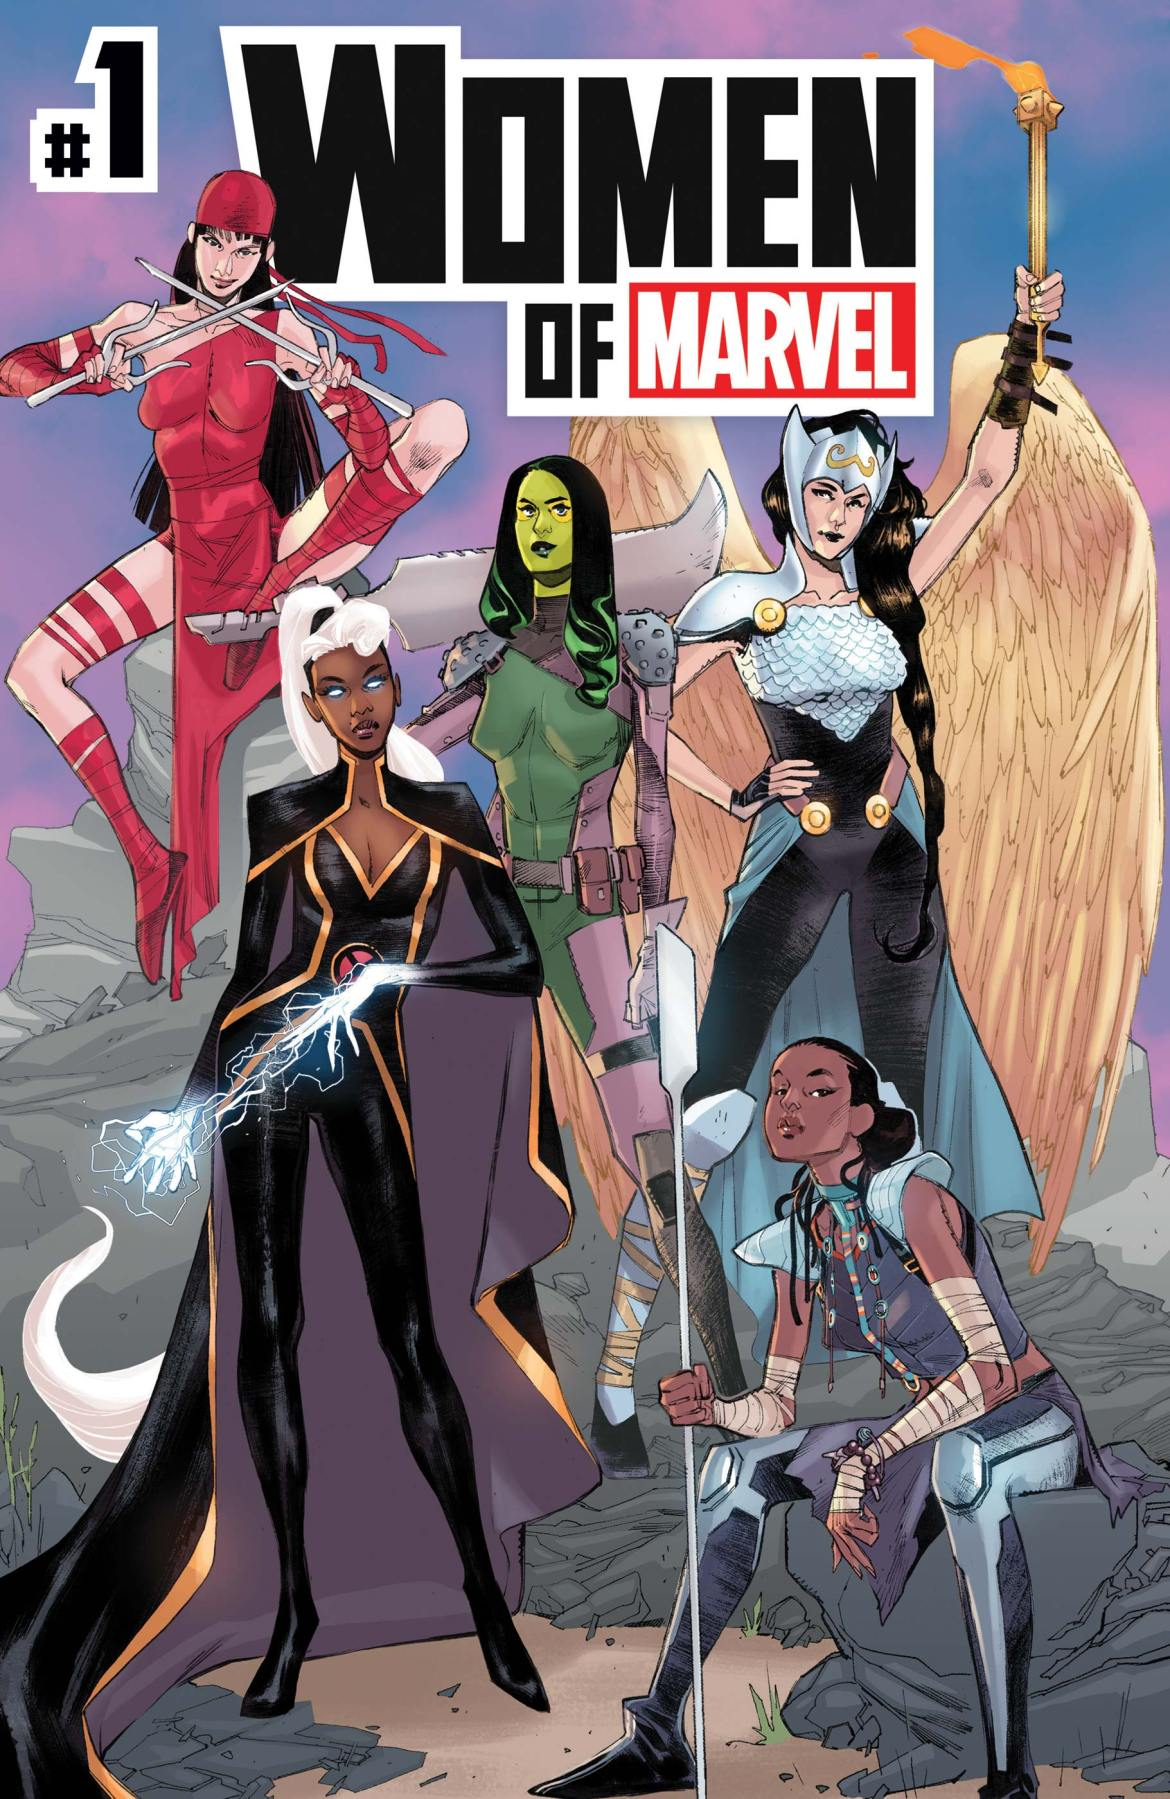 Women-of-Marvel-1 THE WOMEN OF MARVEL are celebrated in this new trailer